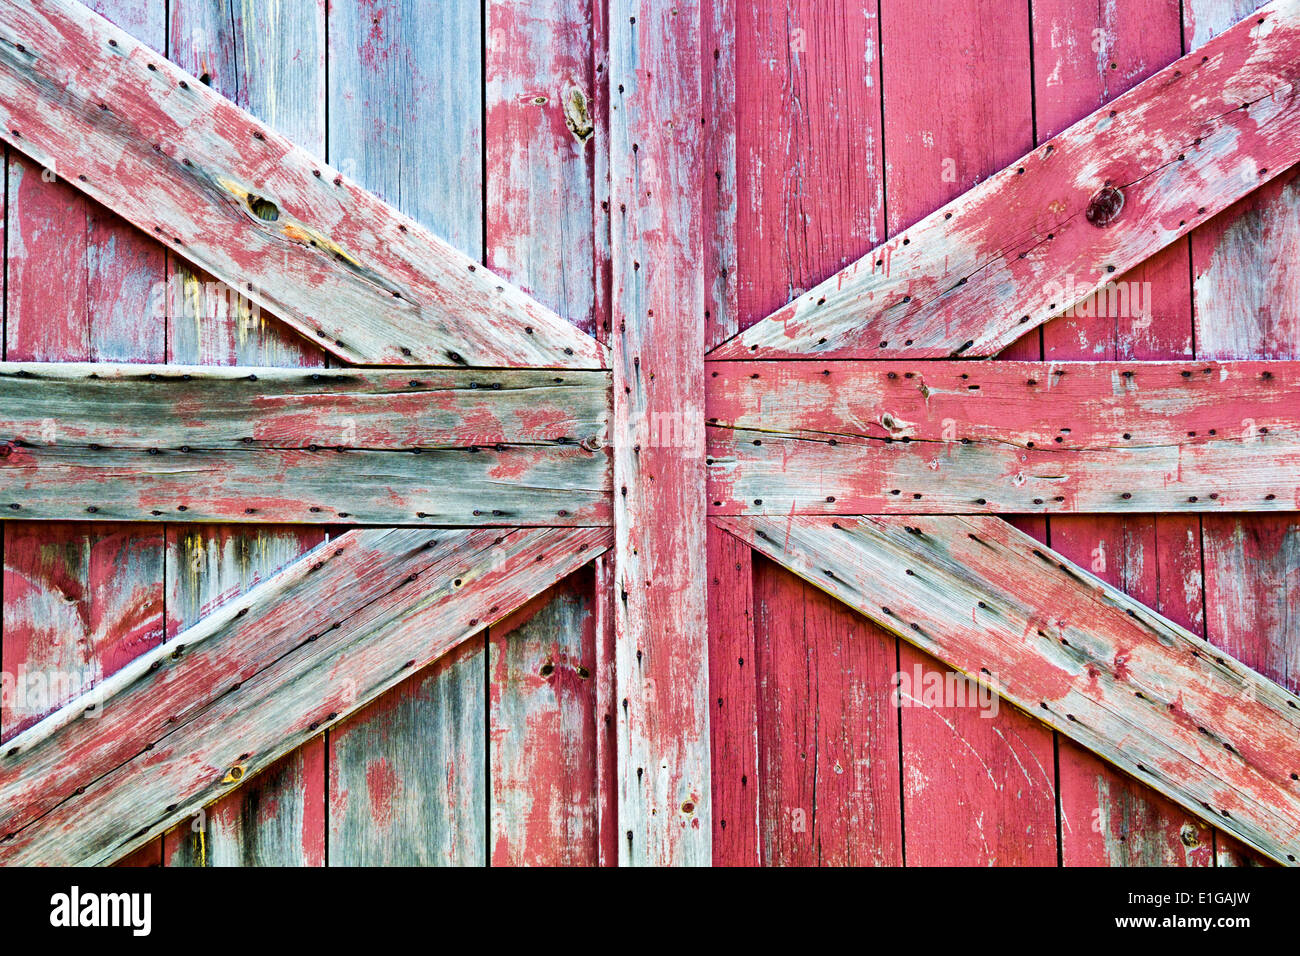 close-up-of-barn-door-with-worn-wood-and